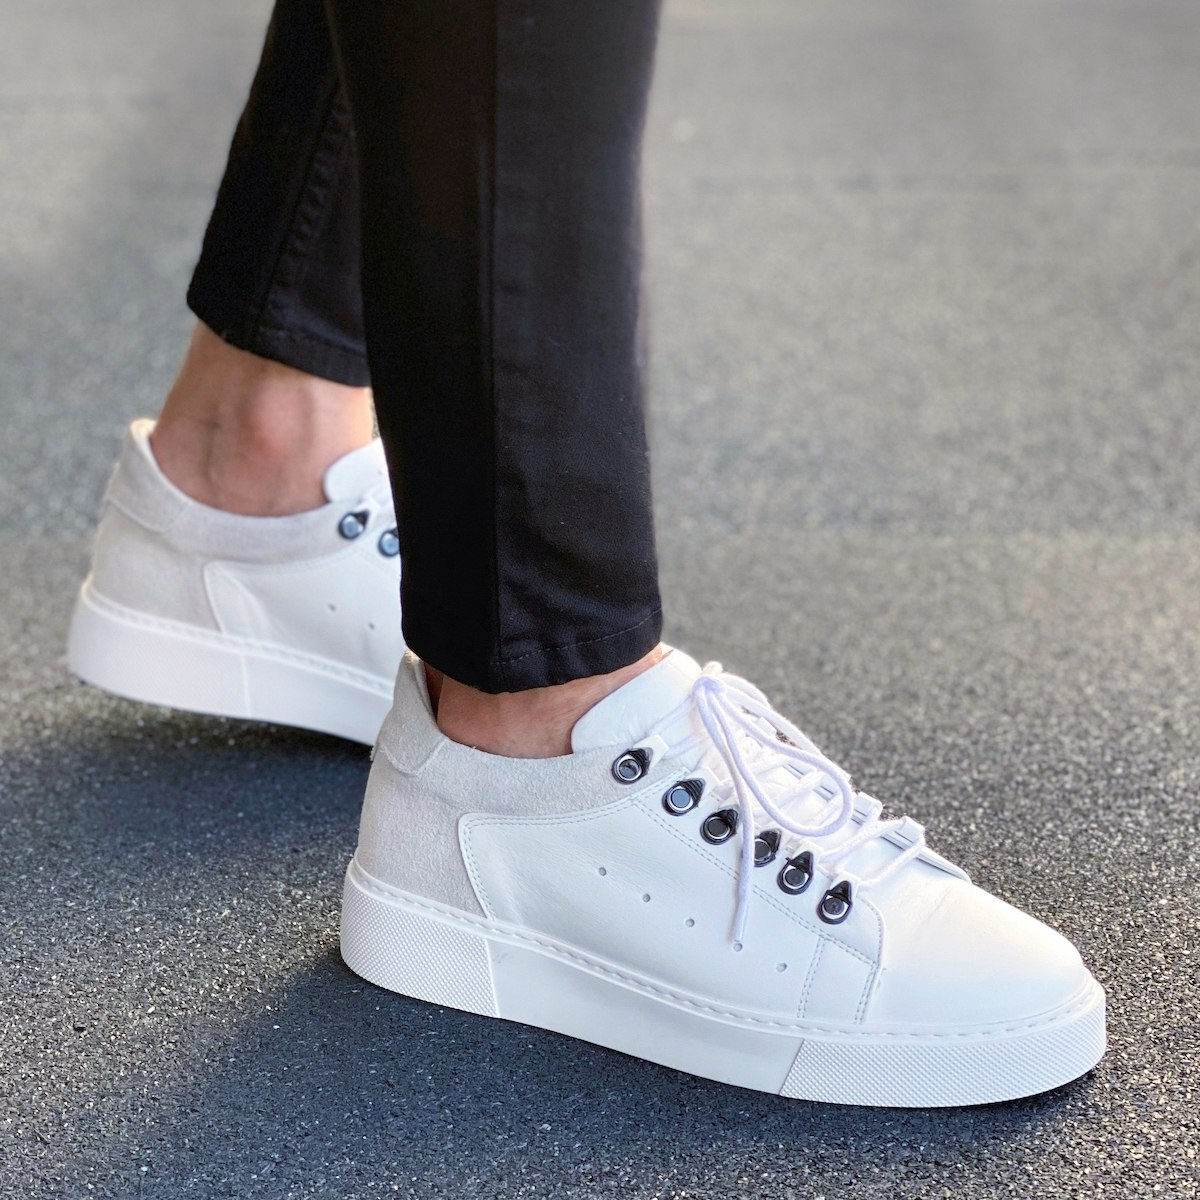 Premium Leather Sneakers In Beige-White